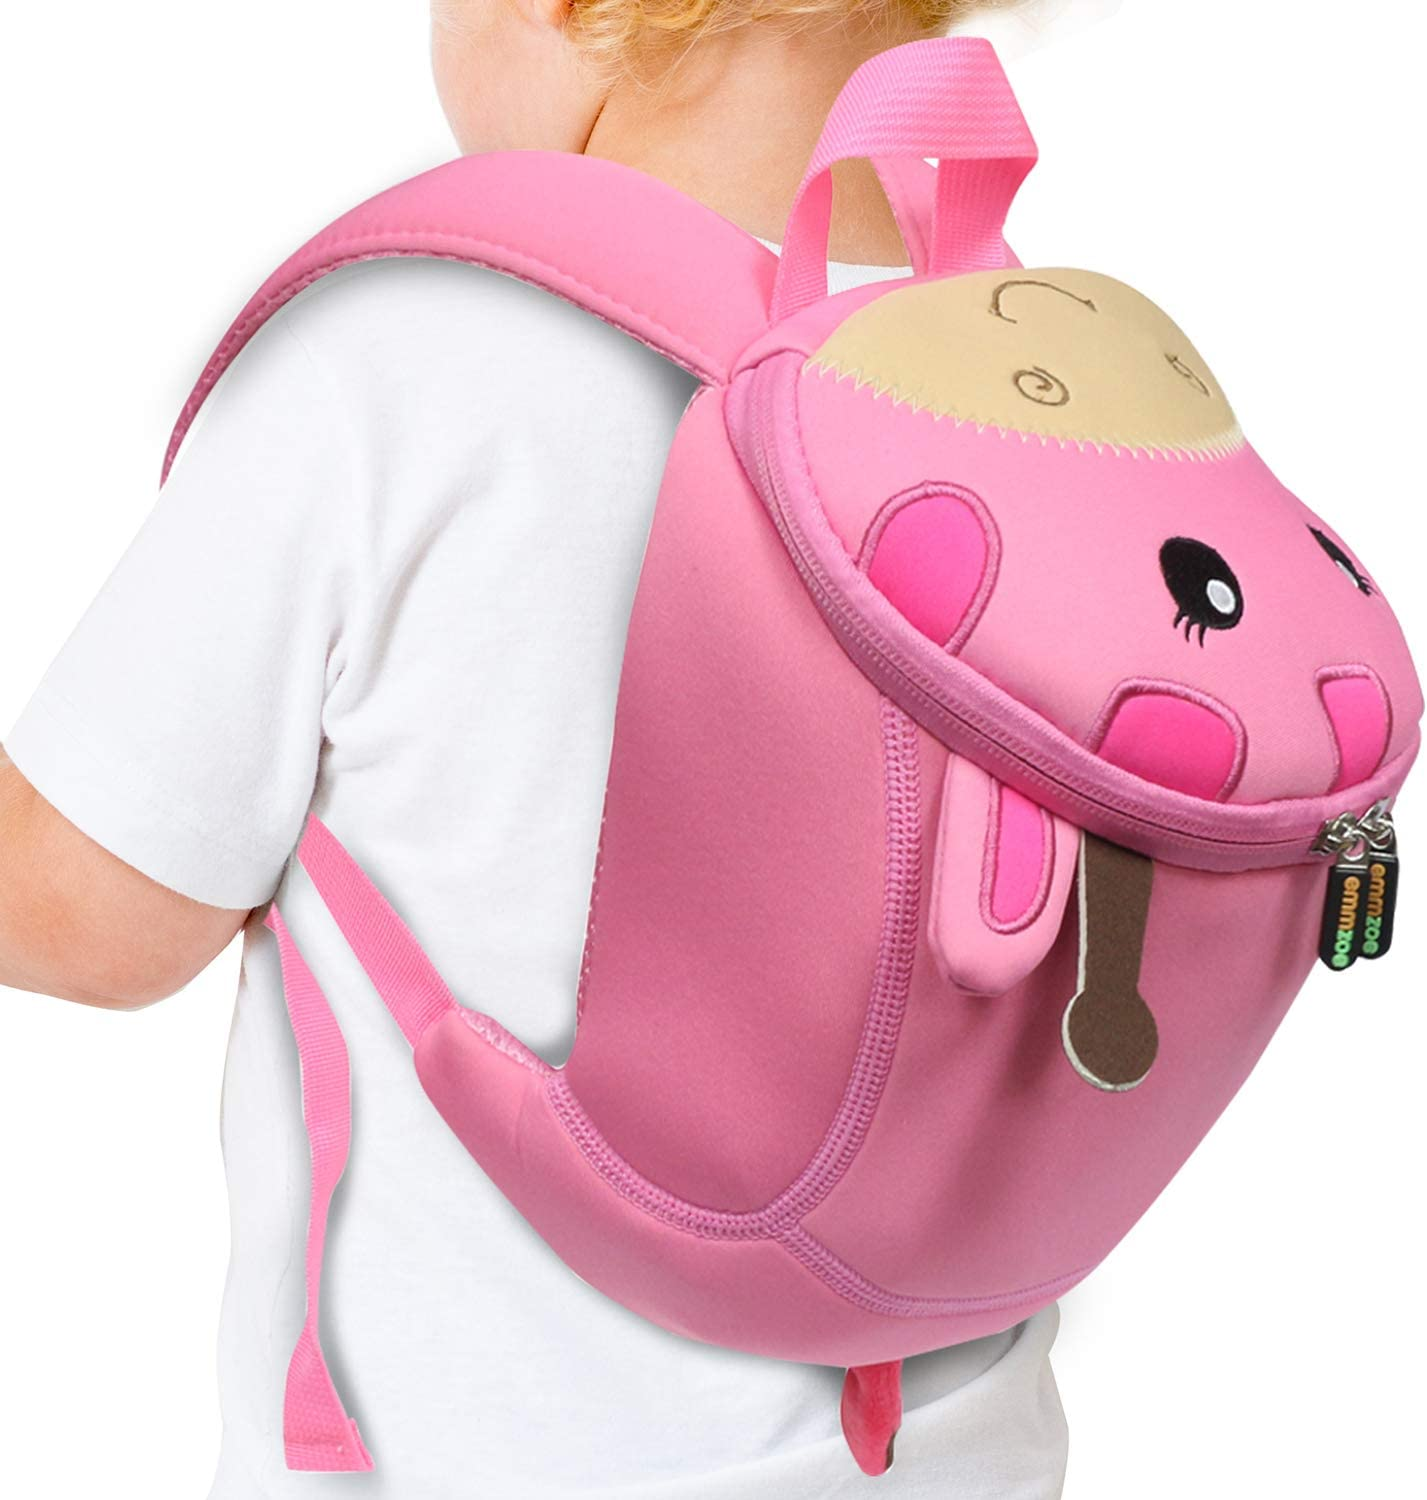 Emmzoe Toddler 3D Animal Backpack with Detachable Safety Harness Leash - Lightweight, Water Resistant, Adjustable - Fits Snacks, Food, Toys (Pink Giraffe)